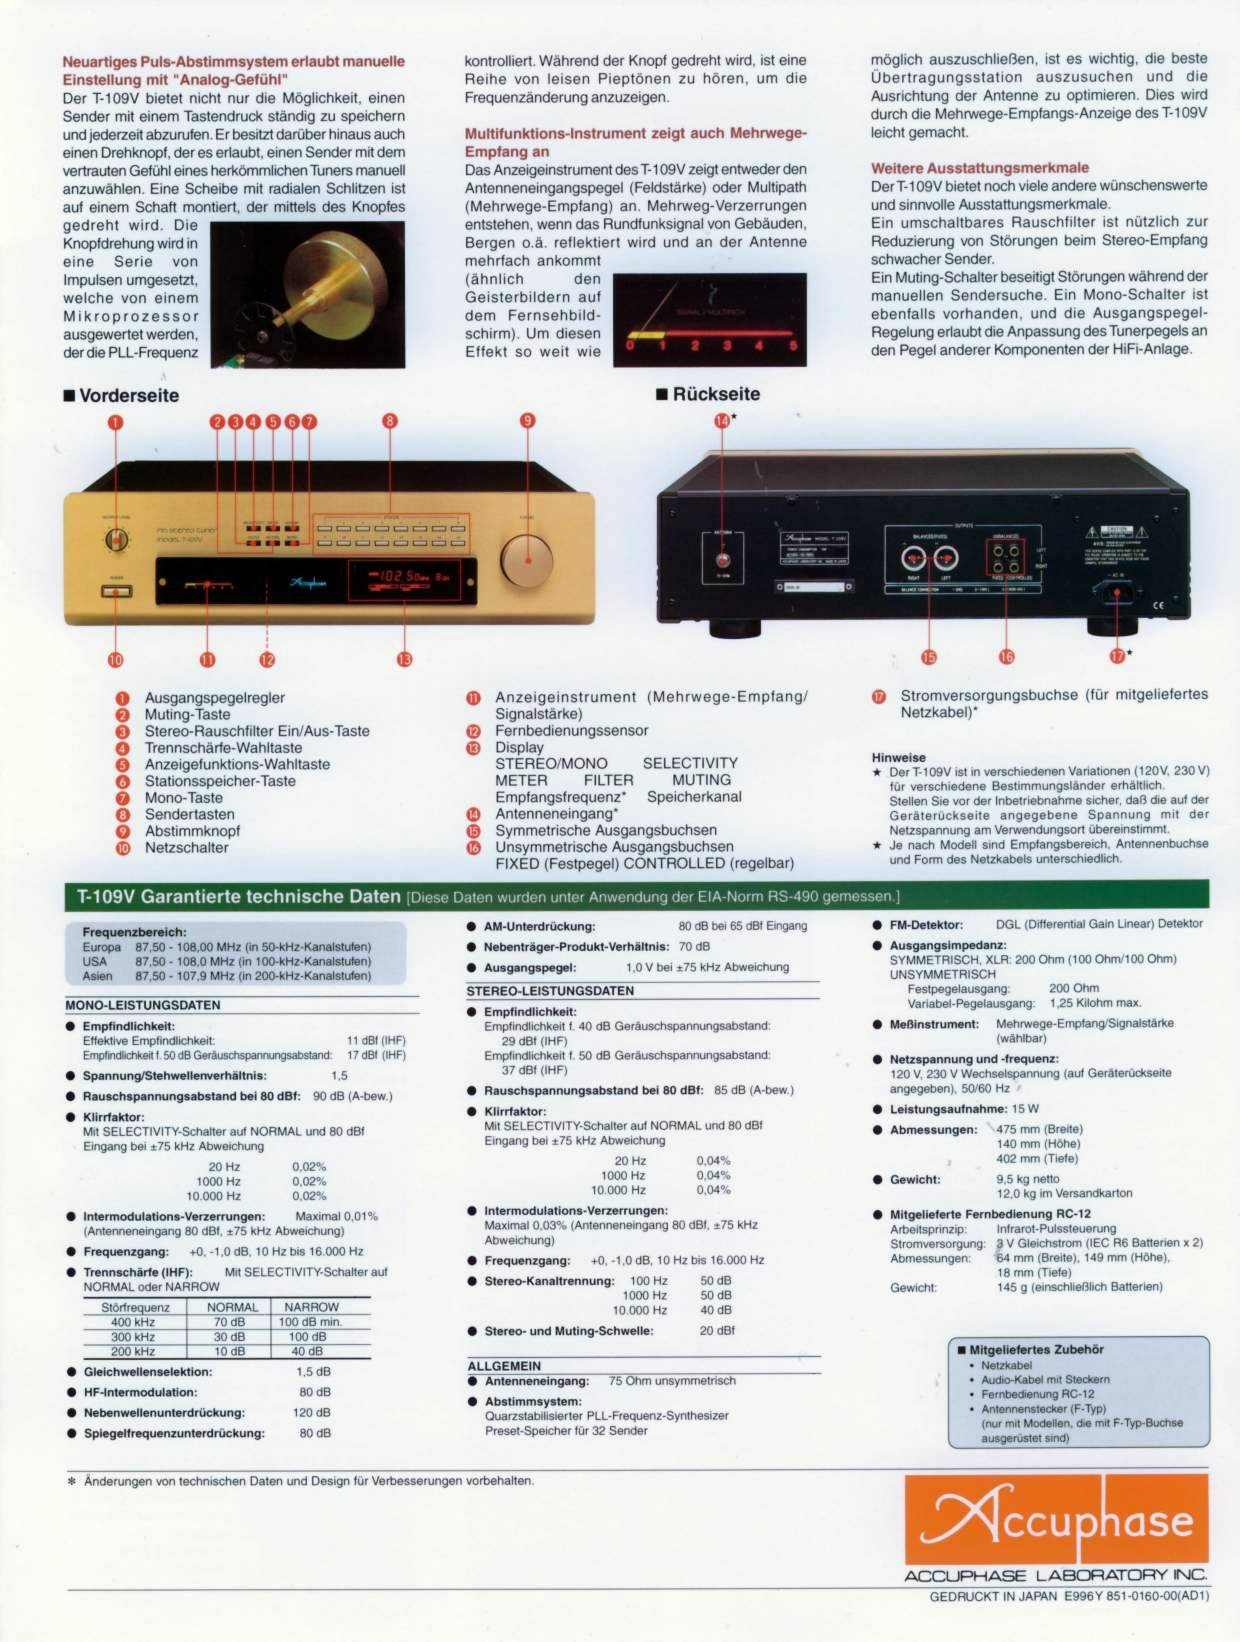 Accuphase T-109 V-Daten.jpg